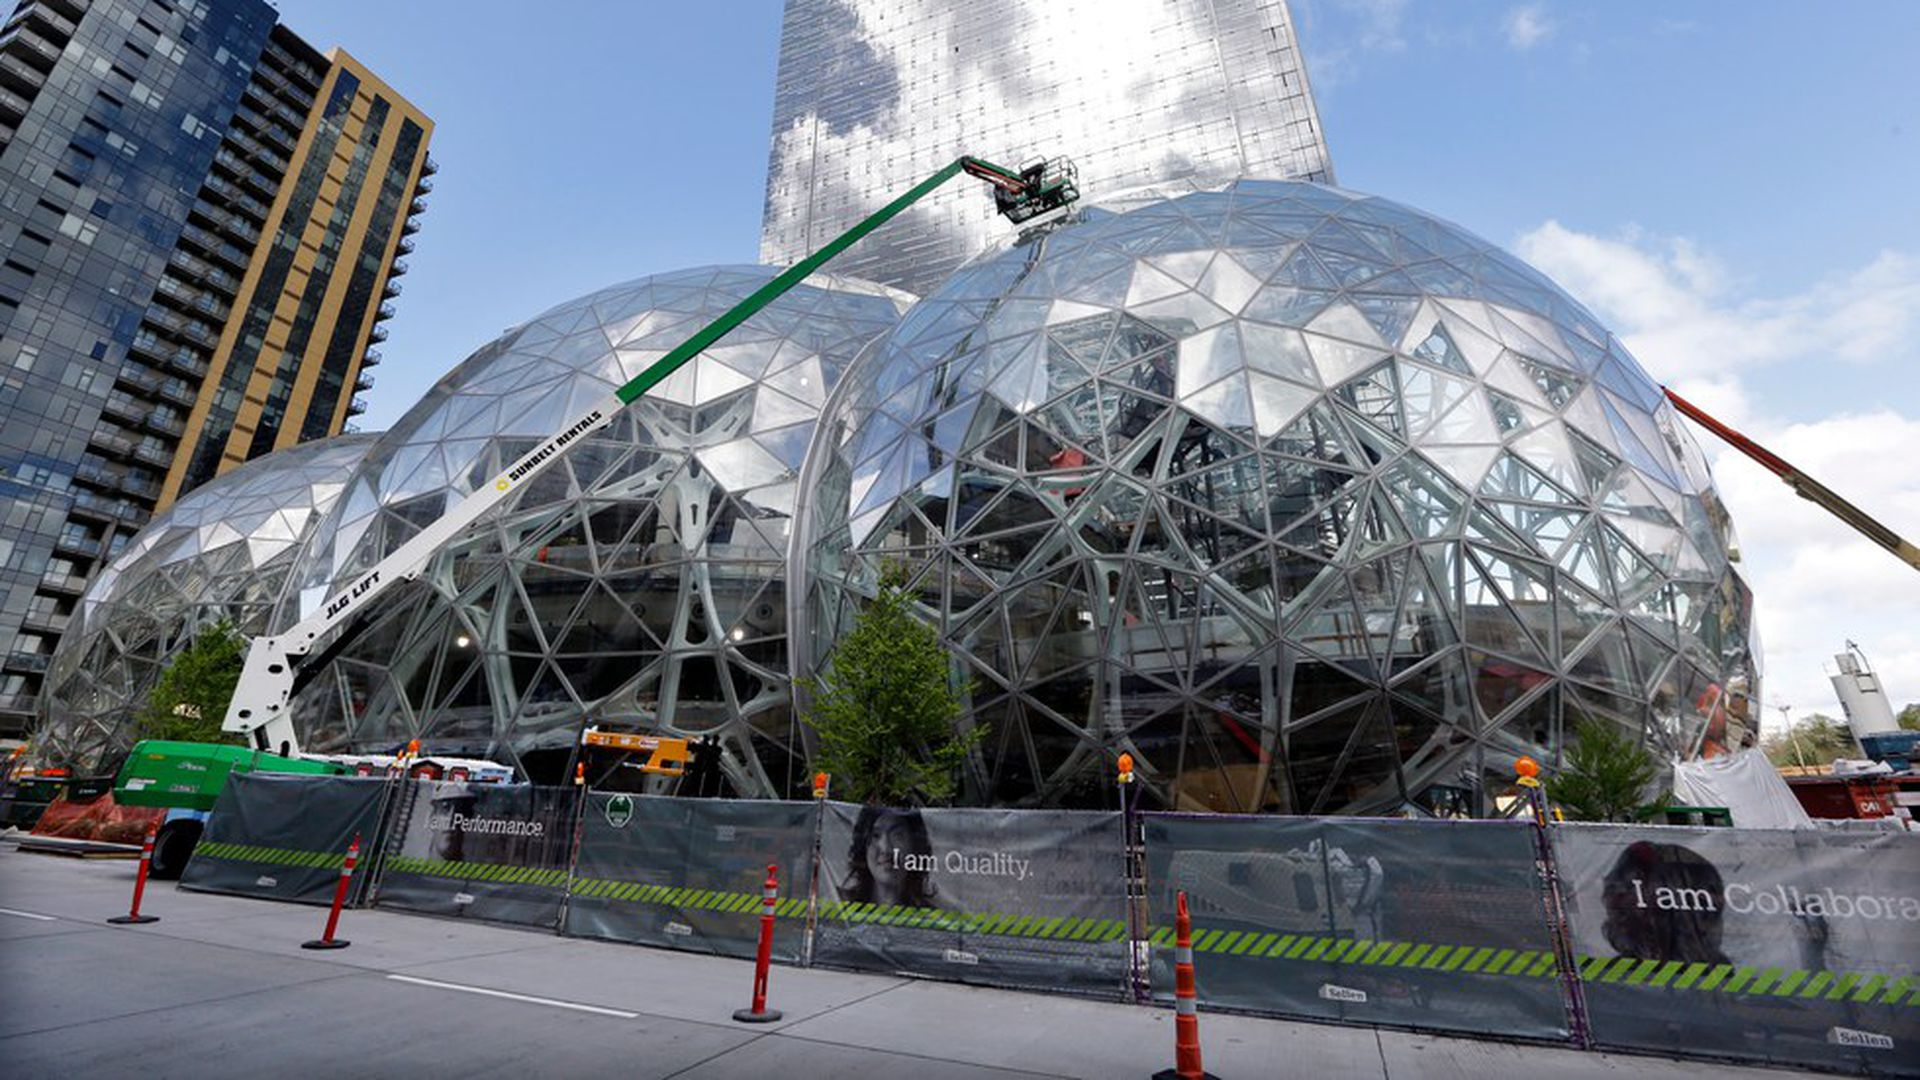 5 potential contenders for Amazon's next headquarters